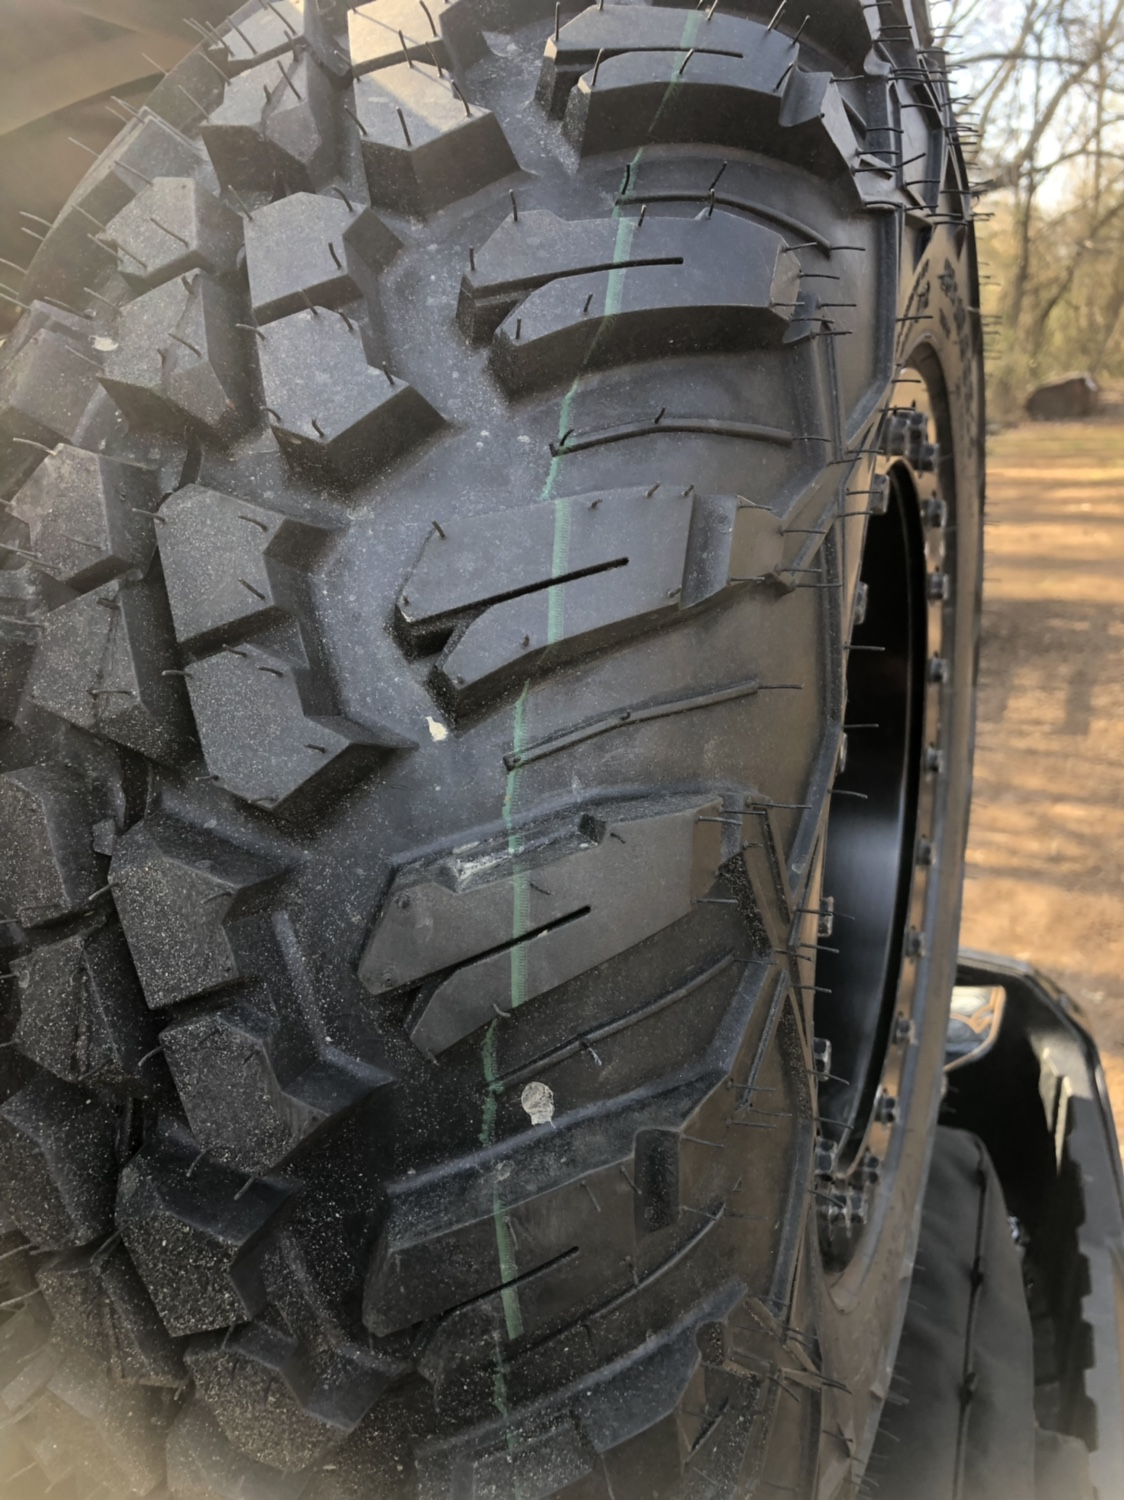 Aftermarket wheels and tires for Teryx.-img_2727.jpg